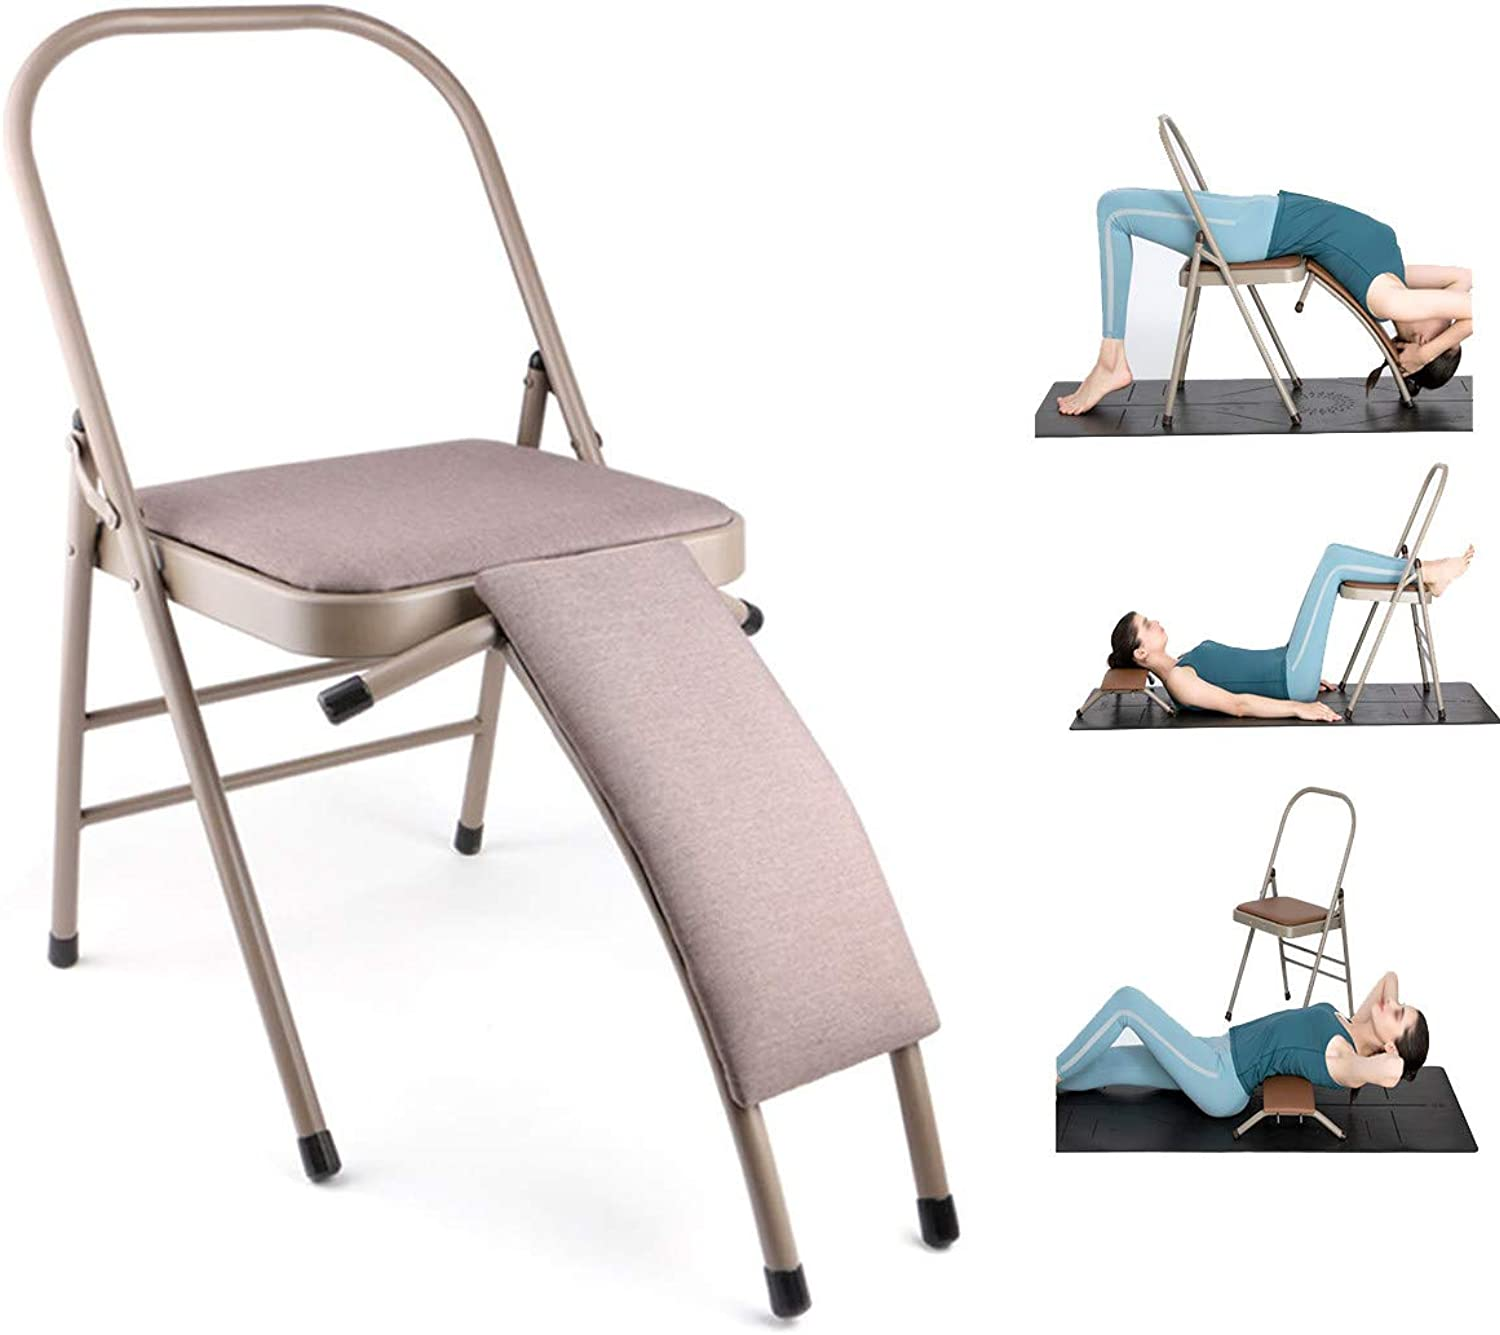 Yoga Chair Folding, Leather Upholstered Seat and Removeable Waist Support, Home Gym Body Training Auxiliary Chair with Waist Support, Khaki,B